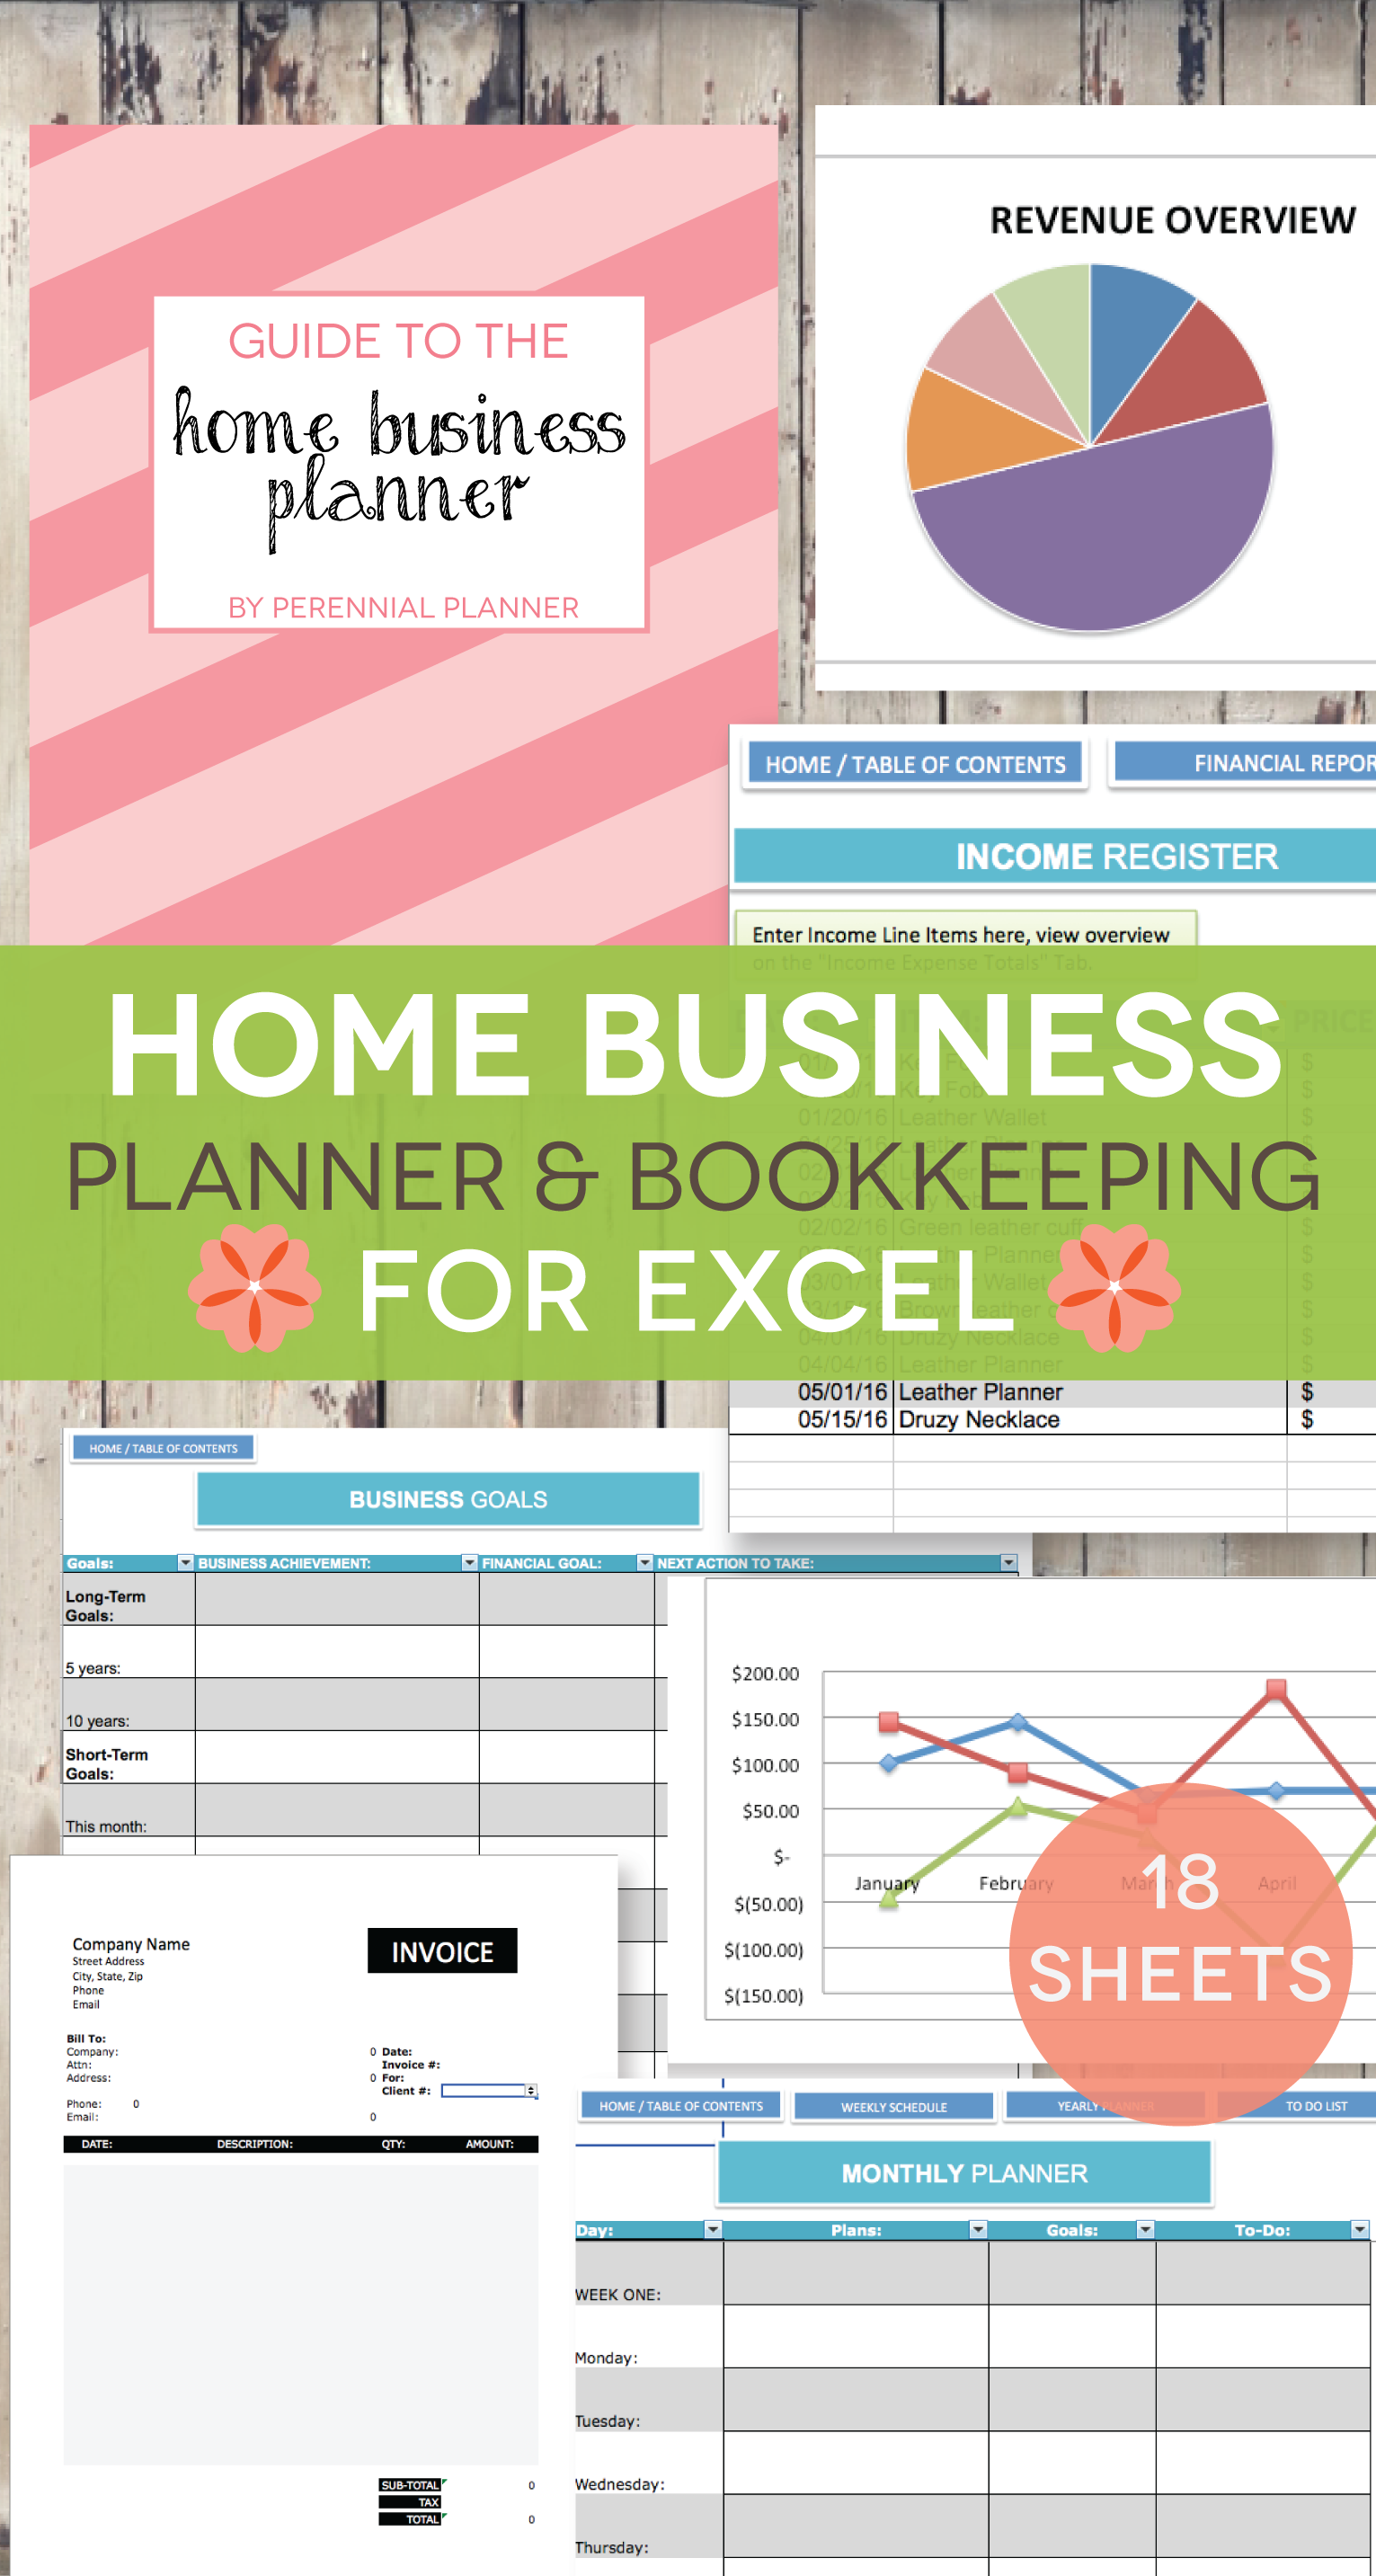 Business Use Of Home 2020.Home Business Planner 2019 2020 Excel Spreadsheet Etsy